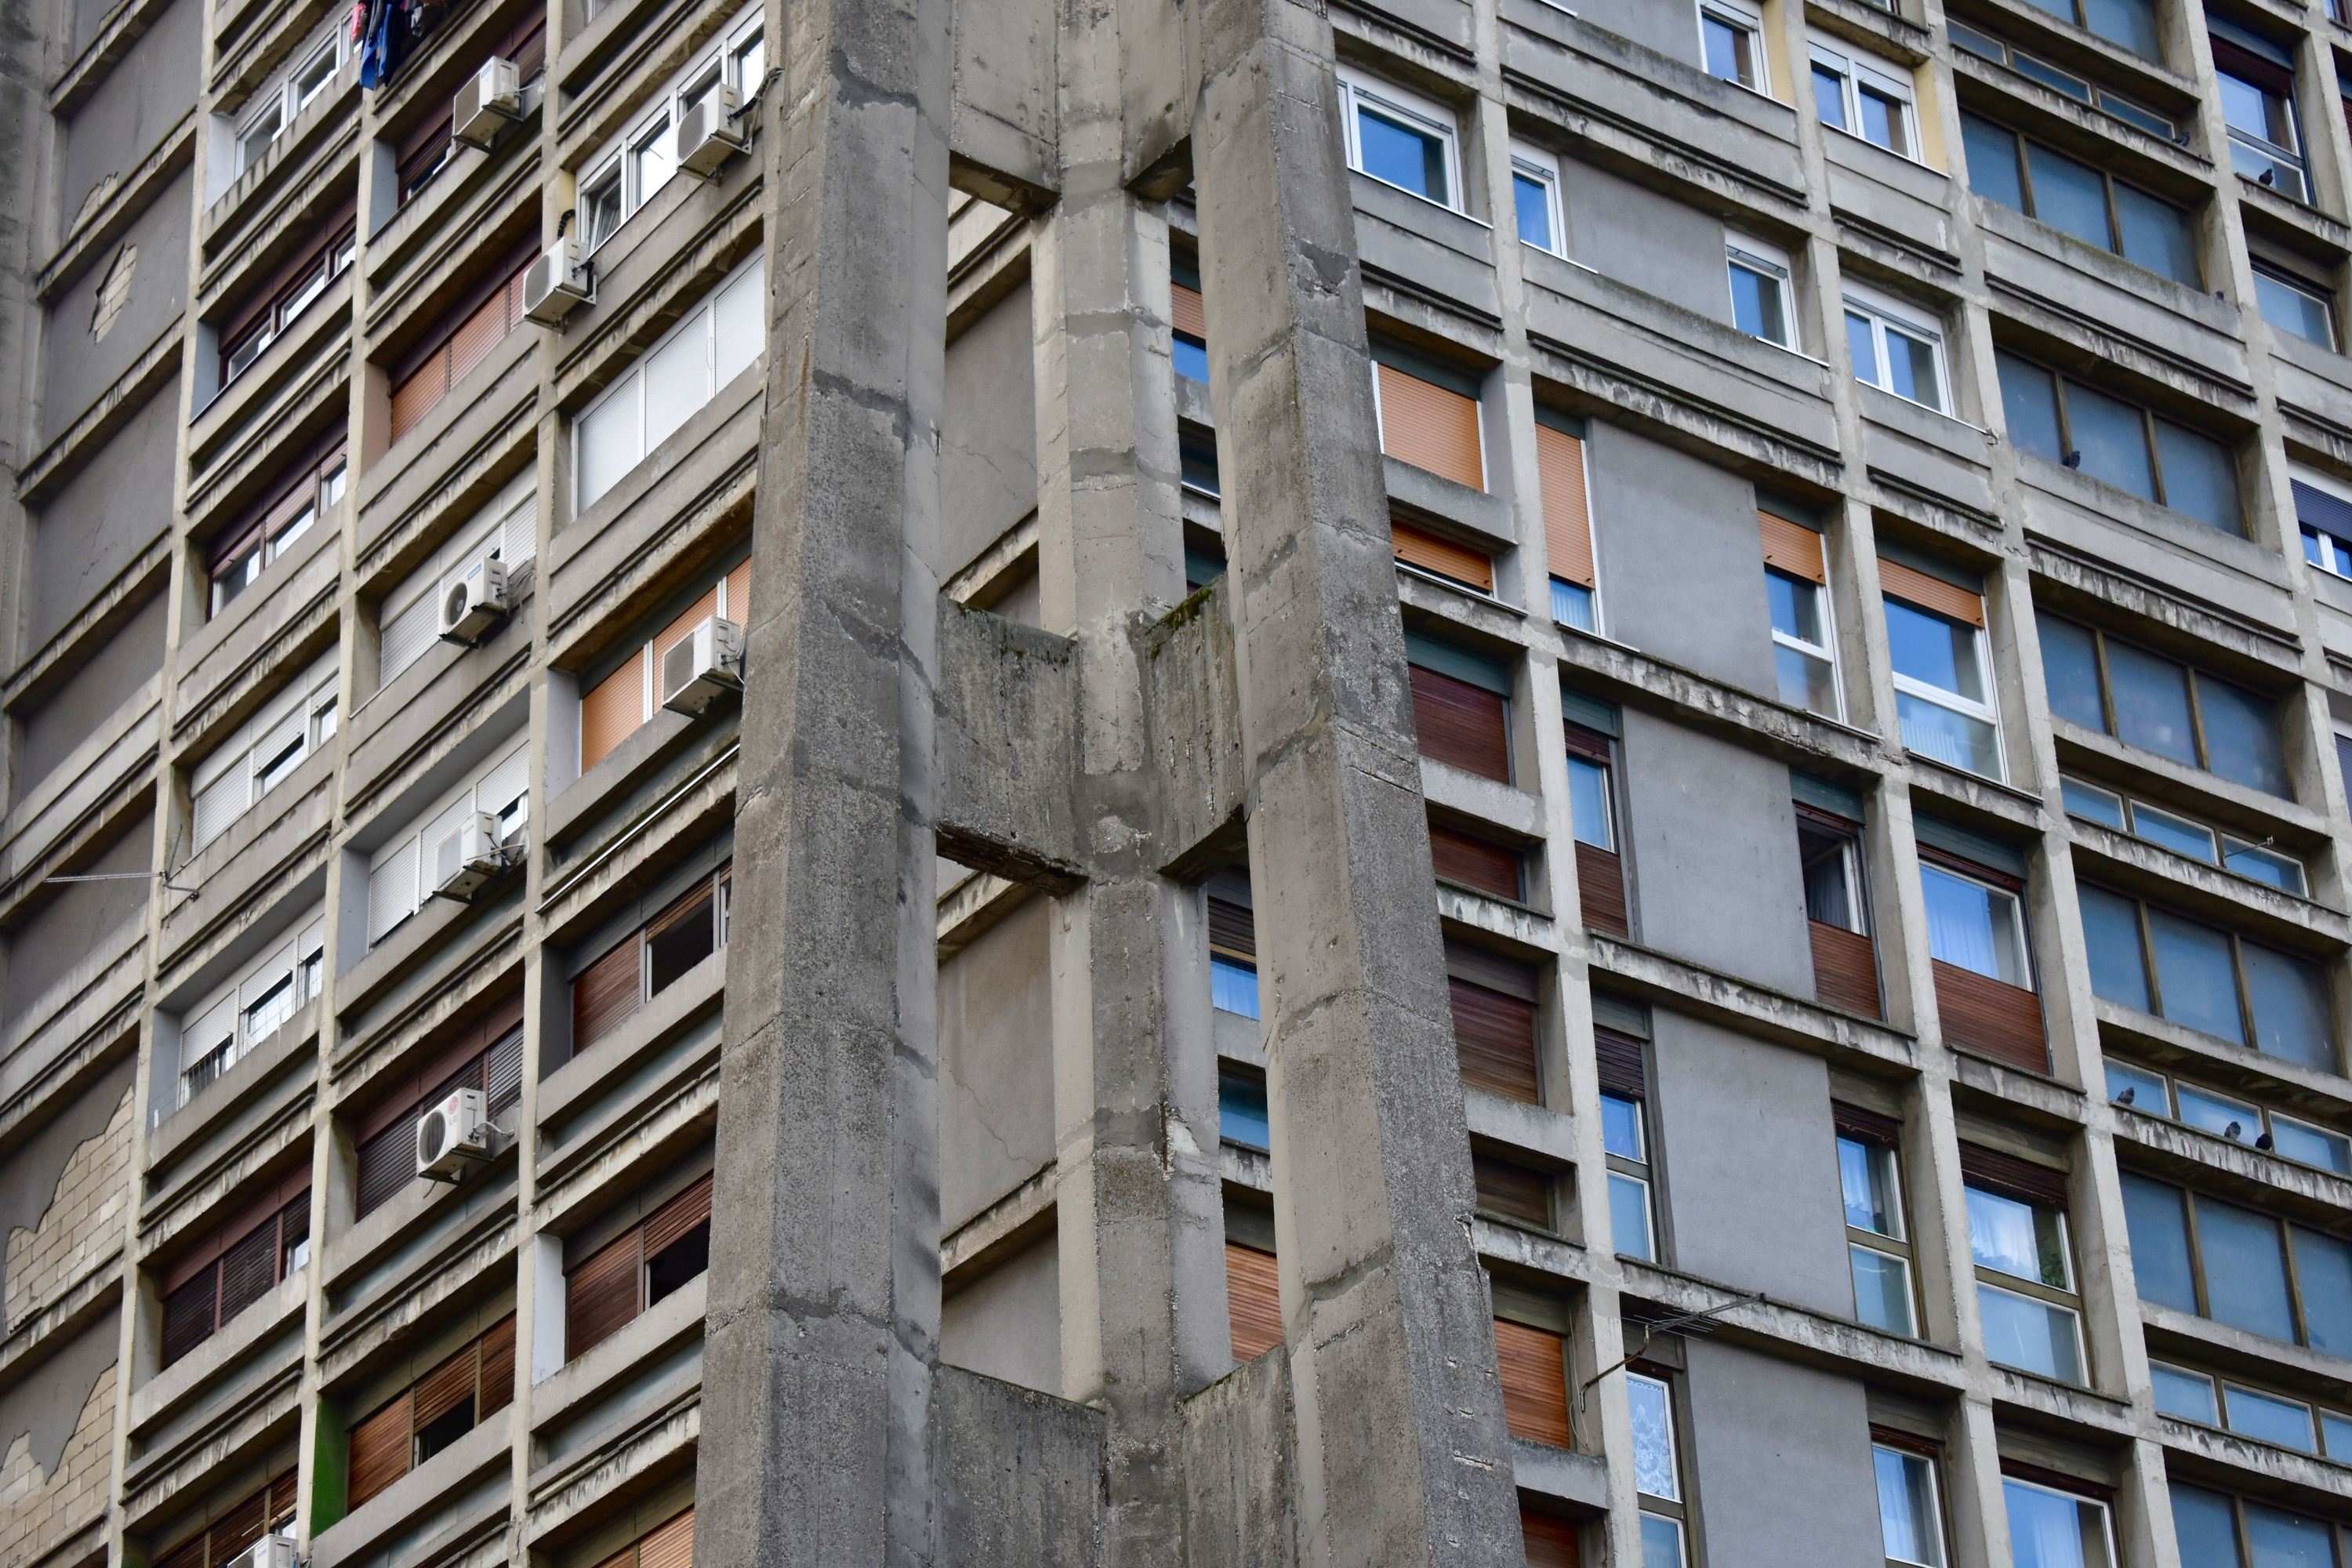 A walking tour of Zagreb's socialist architecture